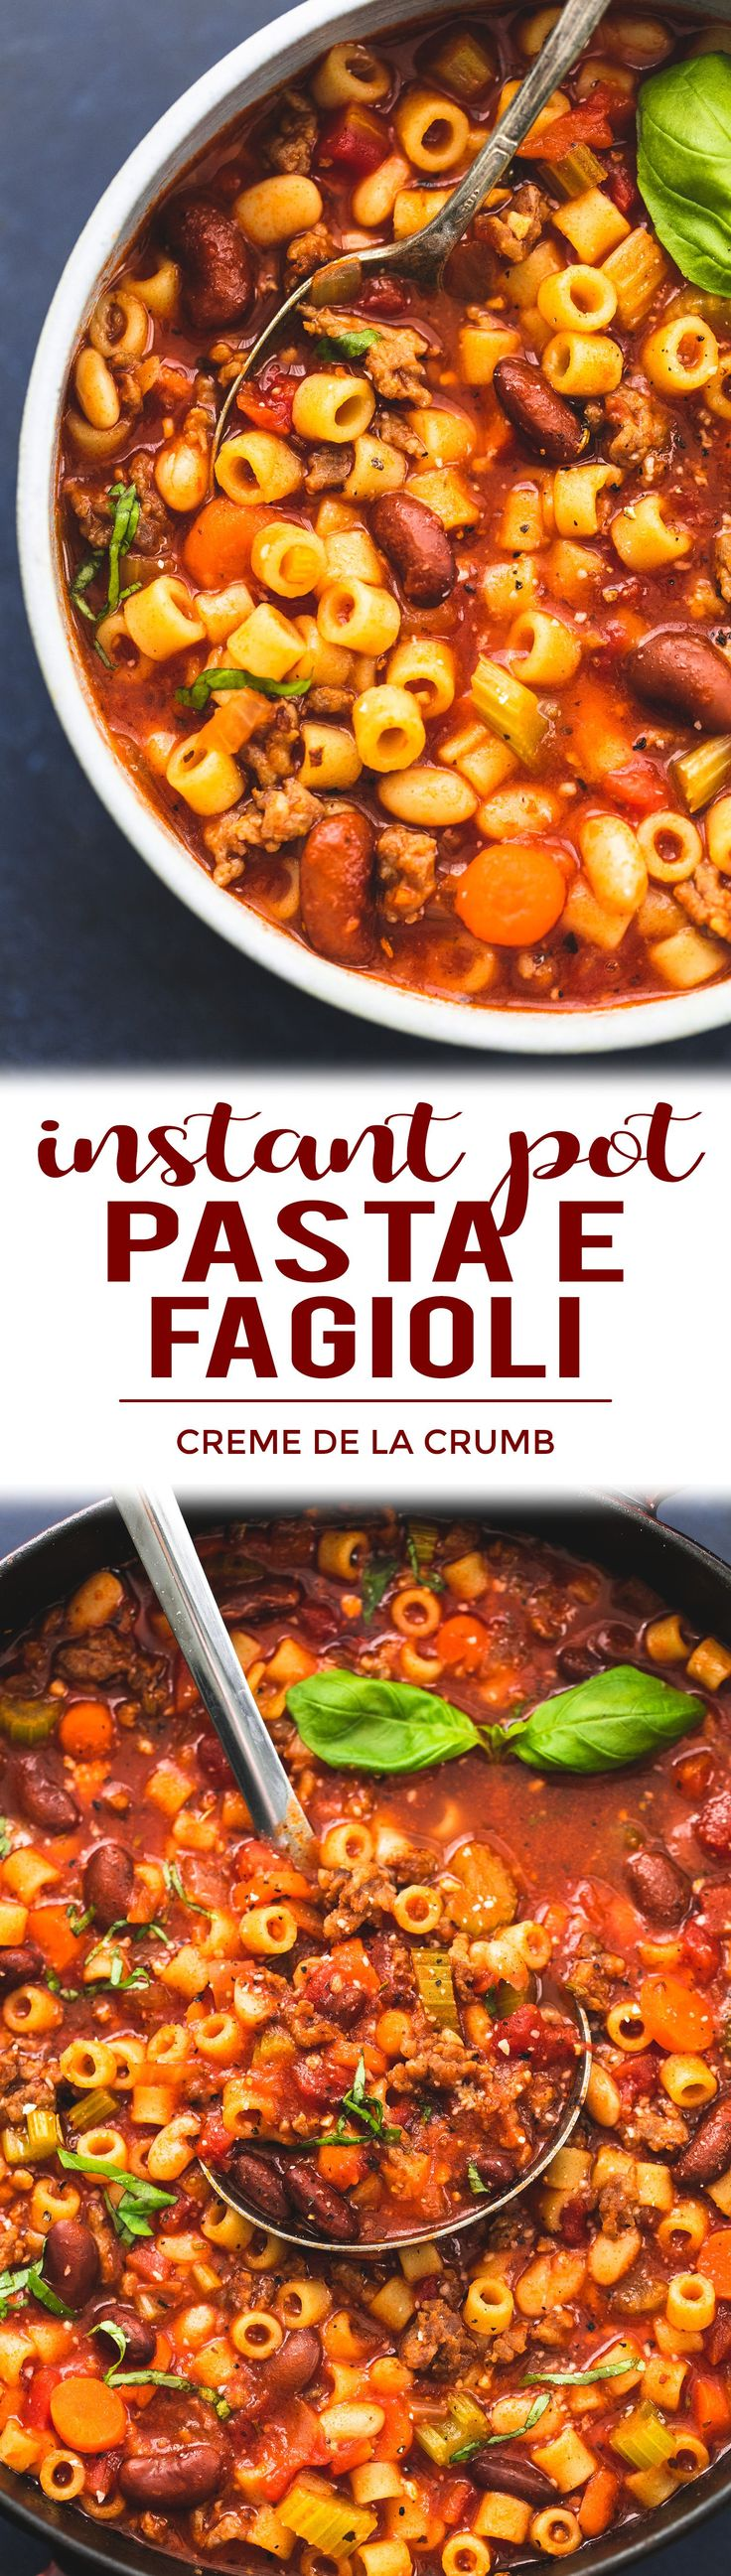 Easy Instant Pot OR Slow Cooker Instant Pot Pasta e Fagioli soup recipe | lecremedelacrumb.com